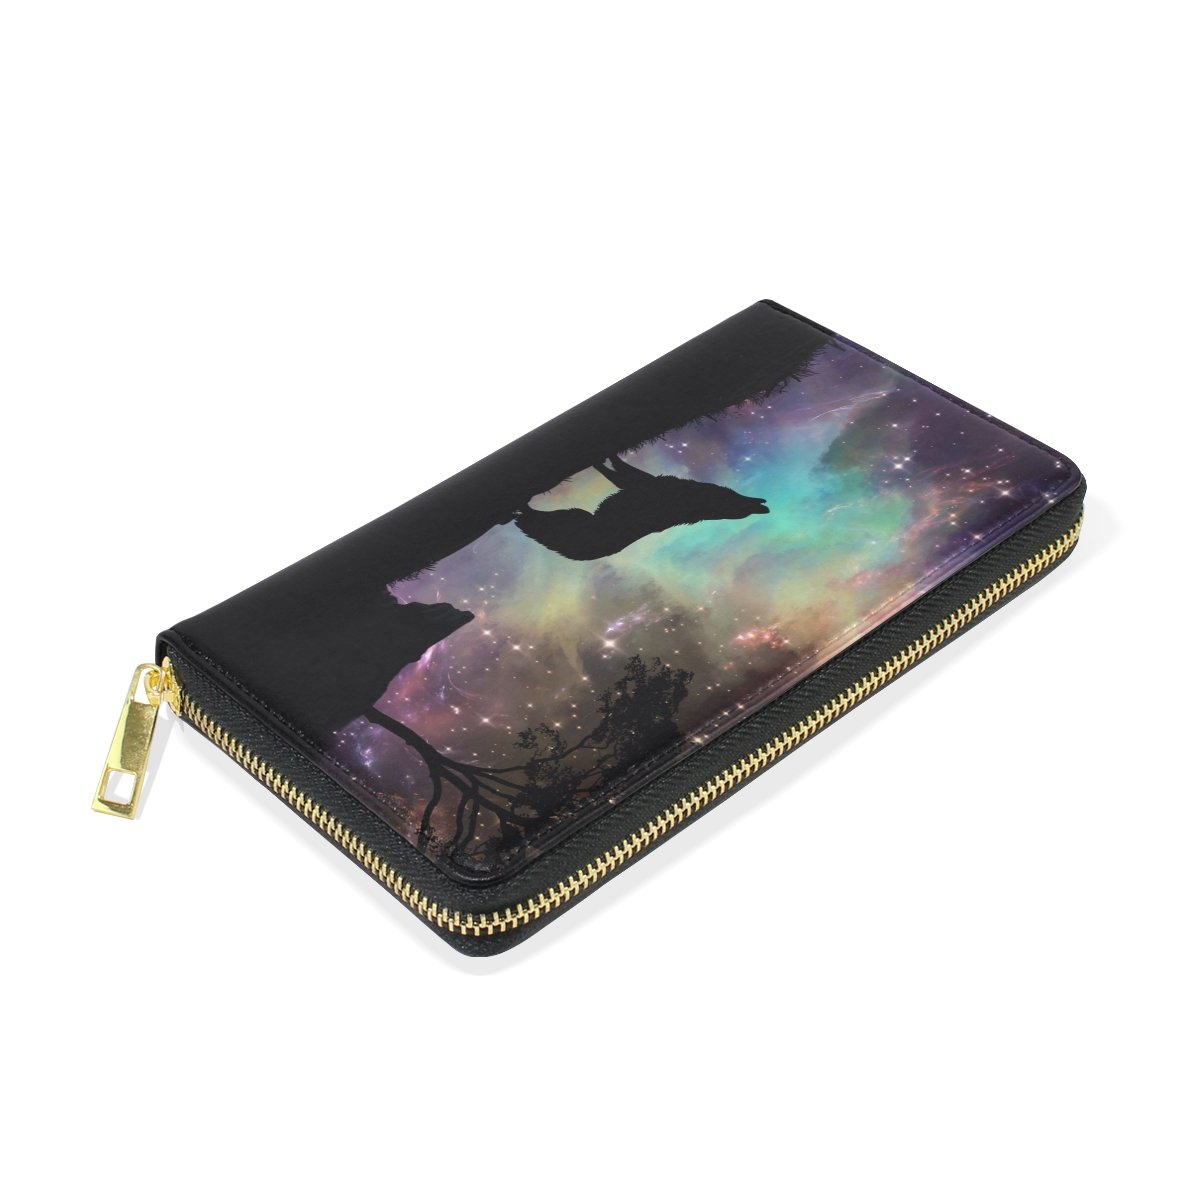 Galaxy Wolf Genuine Leather Girl Zipper Wallets Clutch Coin Phone for Women by FeiHuang (Image #4)